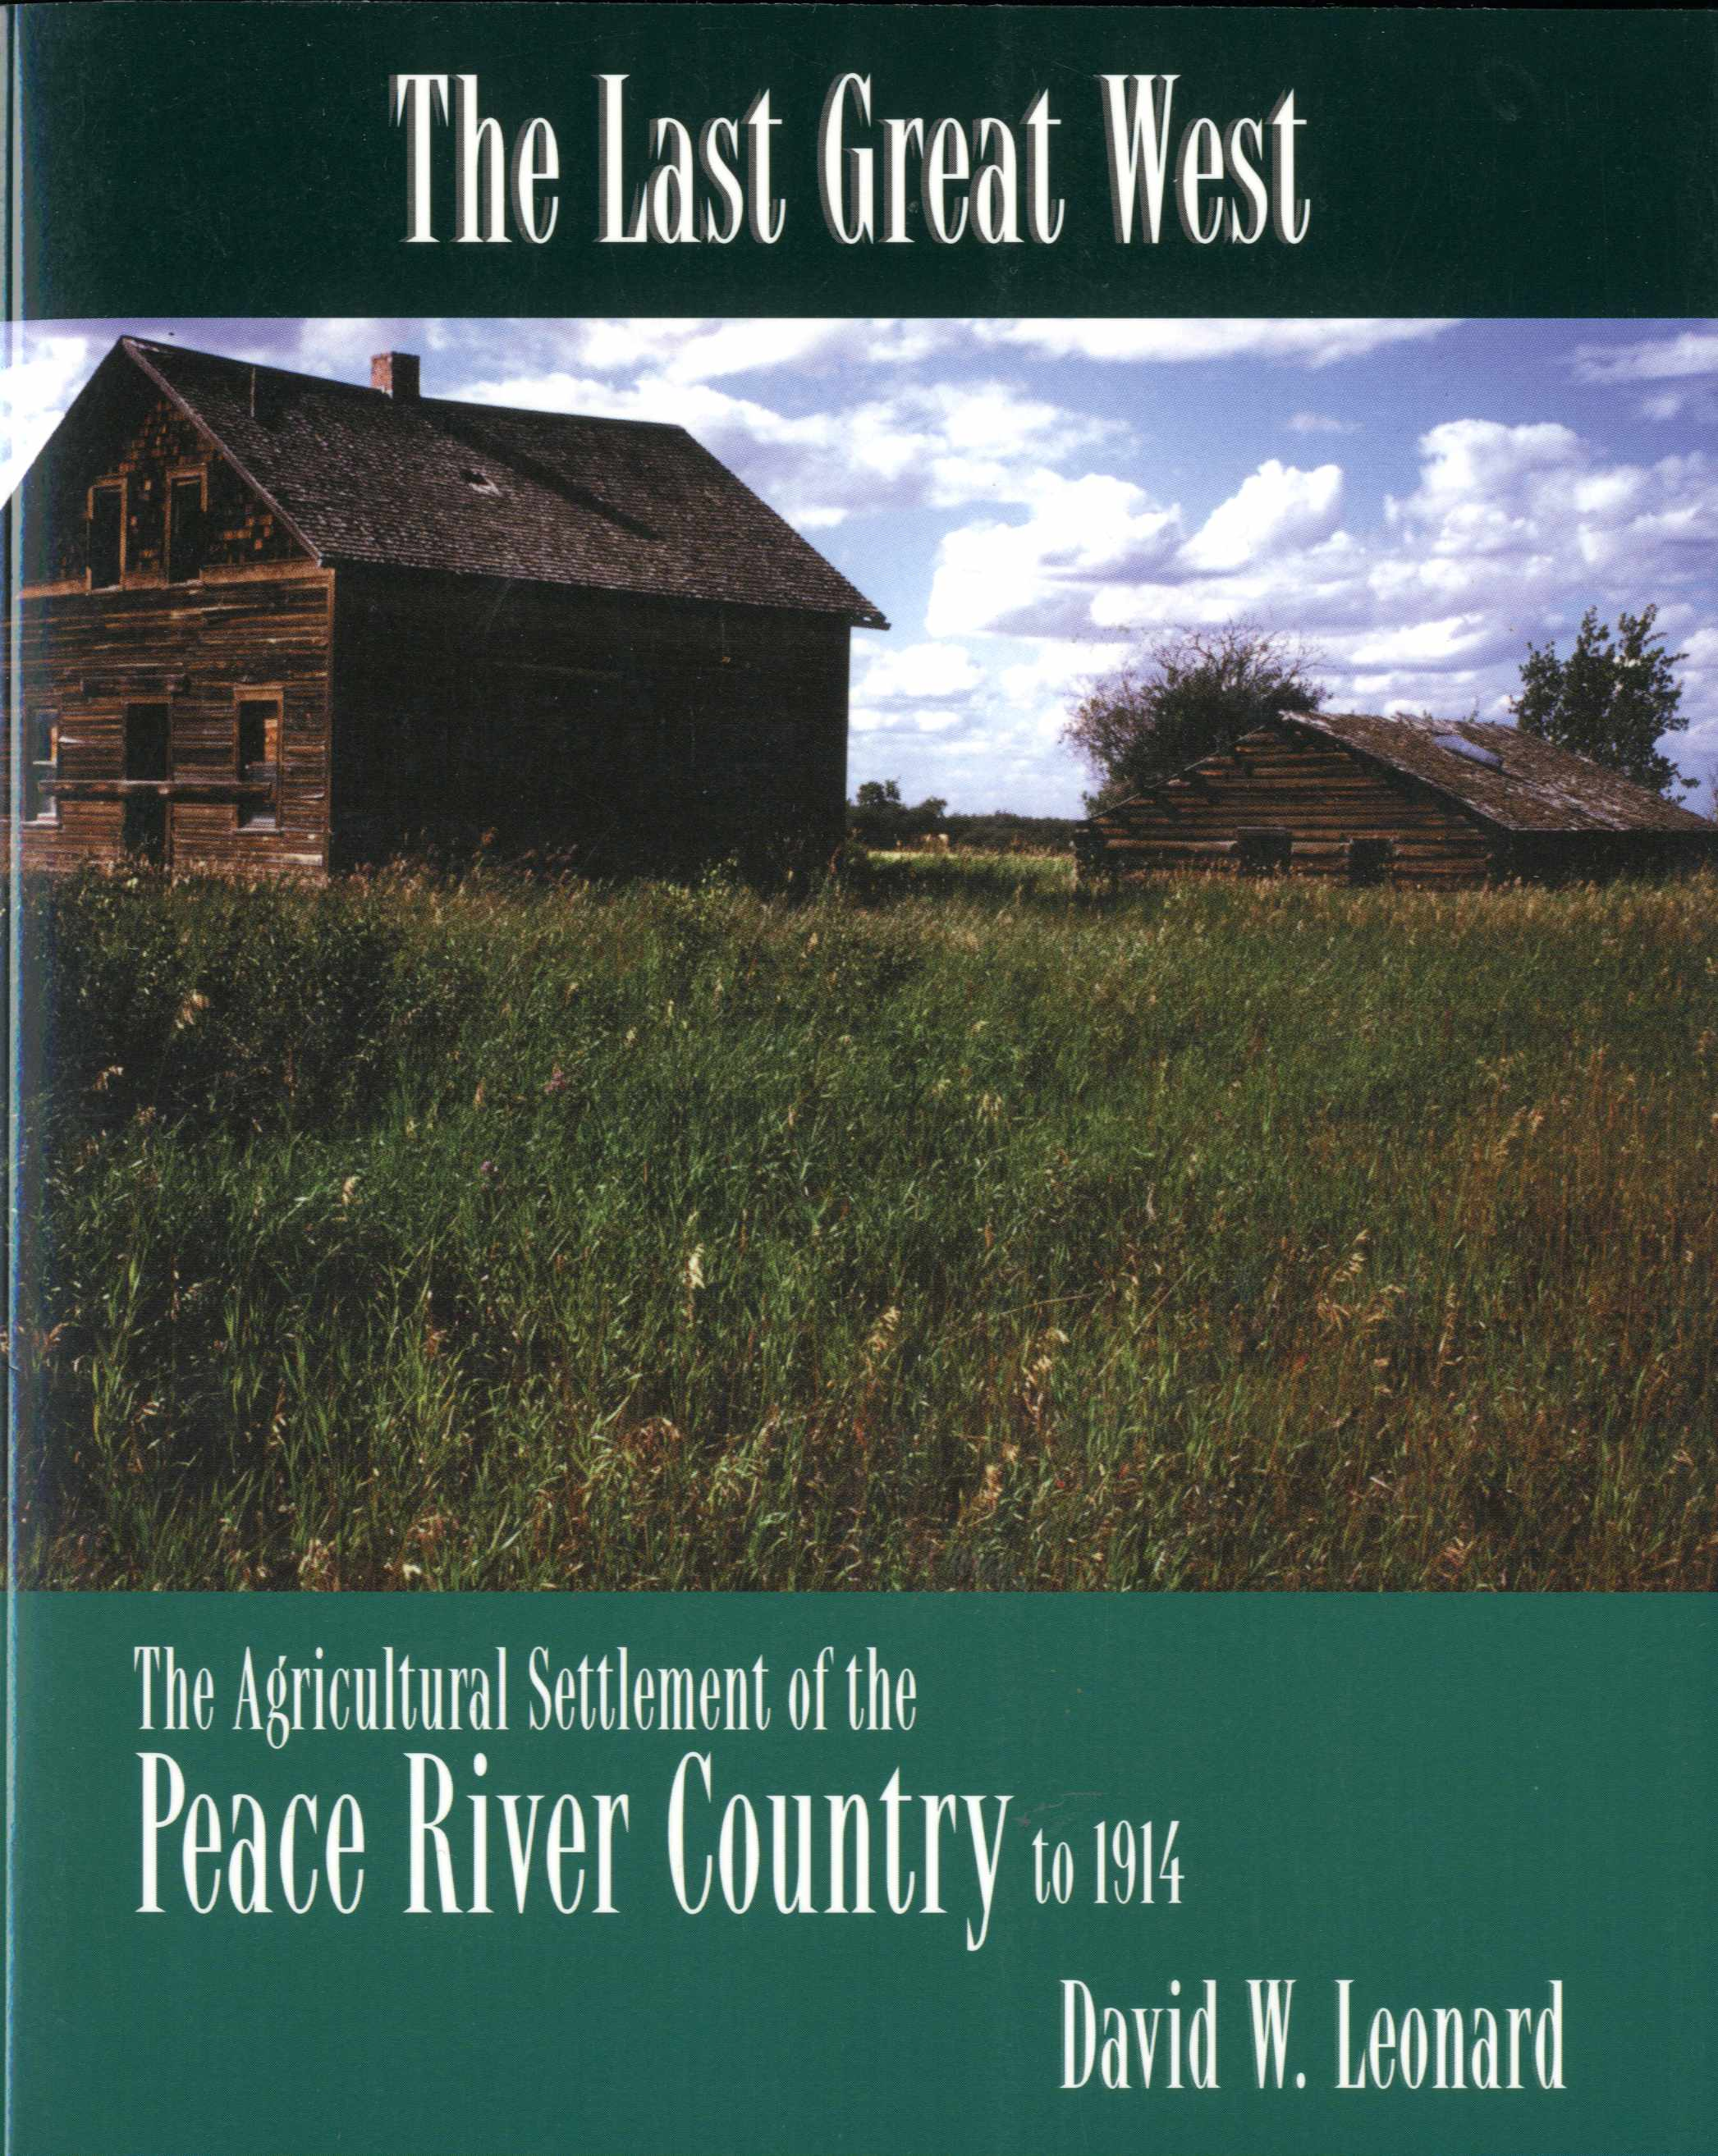 The Last Great West: The Agricultural Settlement of hte Peace River Country to 1914 Image